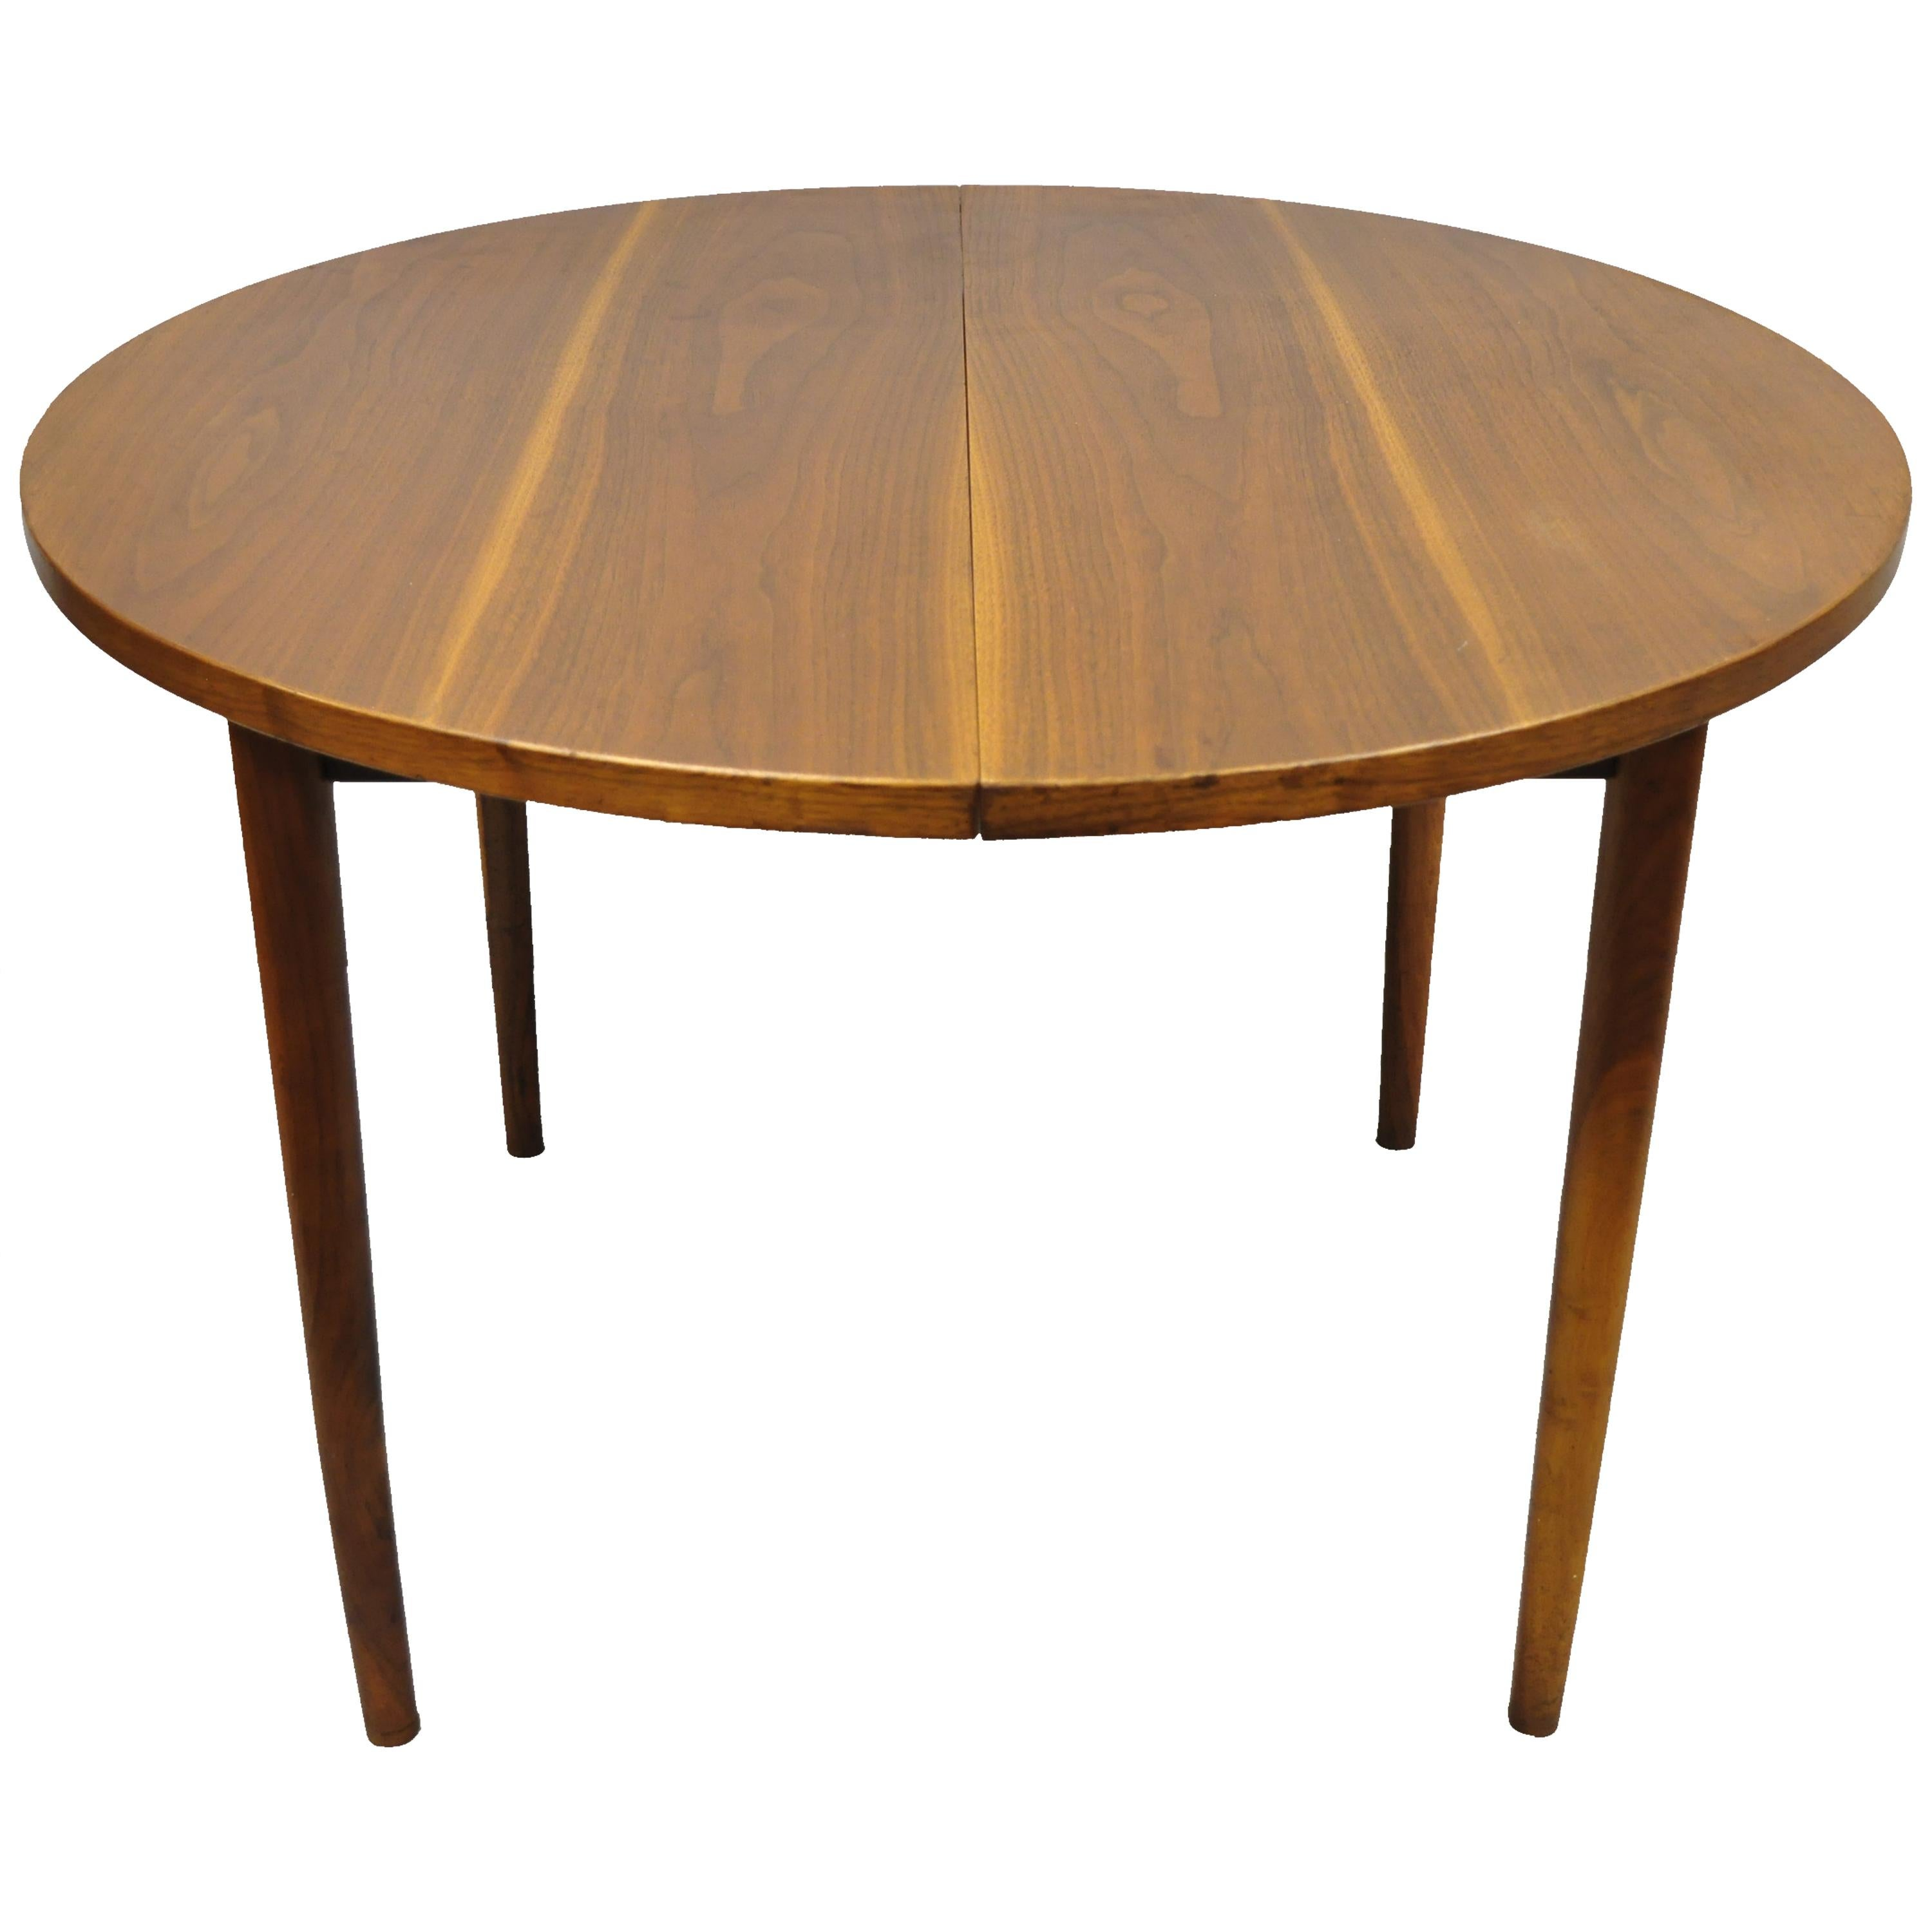 Round Dining Tables With Leaves - 229 For Sale on 1stdibs